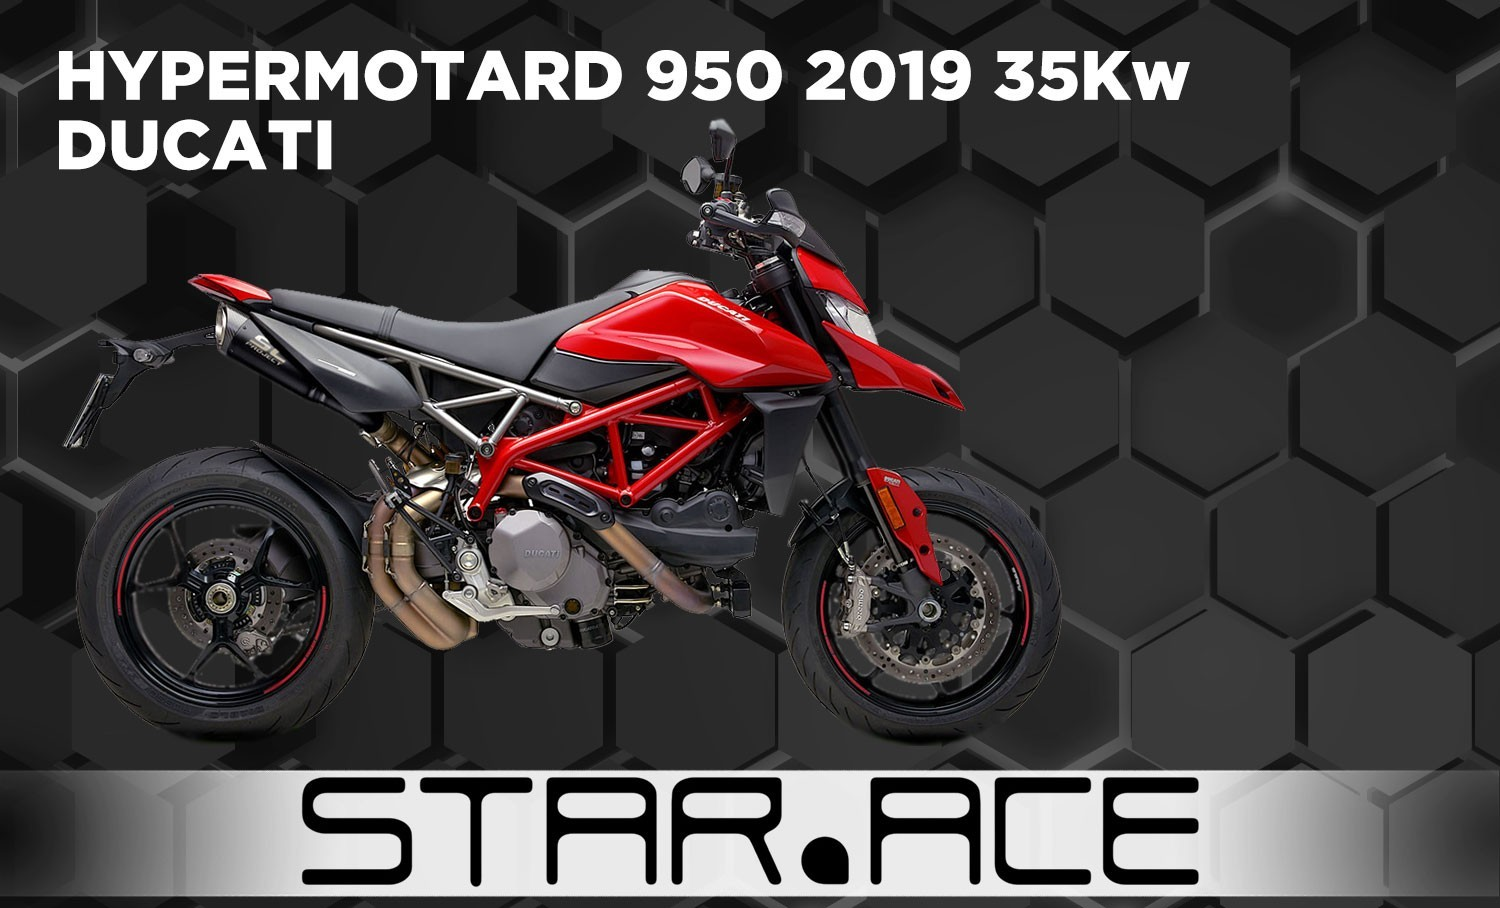 H950 19 SC PROJECT S1 SD StarAce RS 35KW